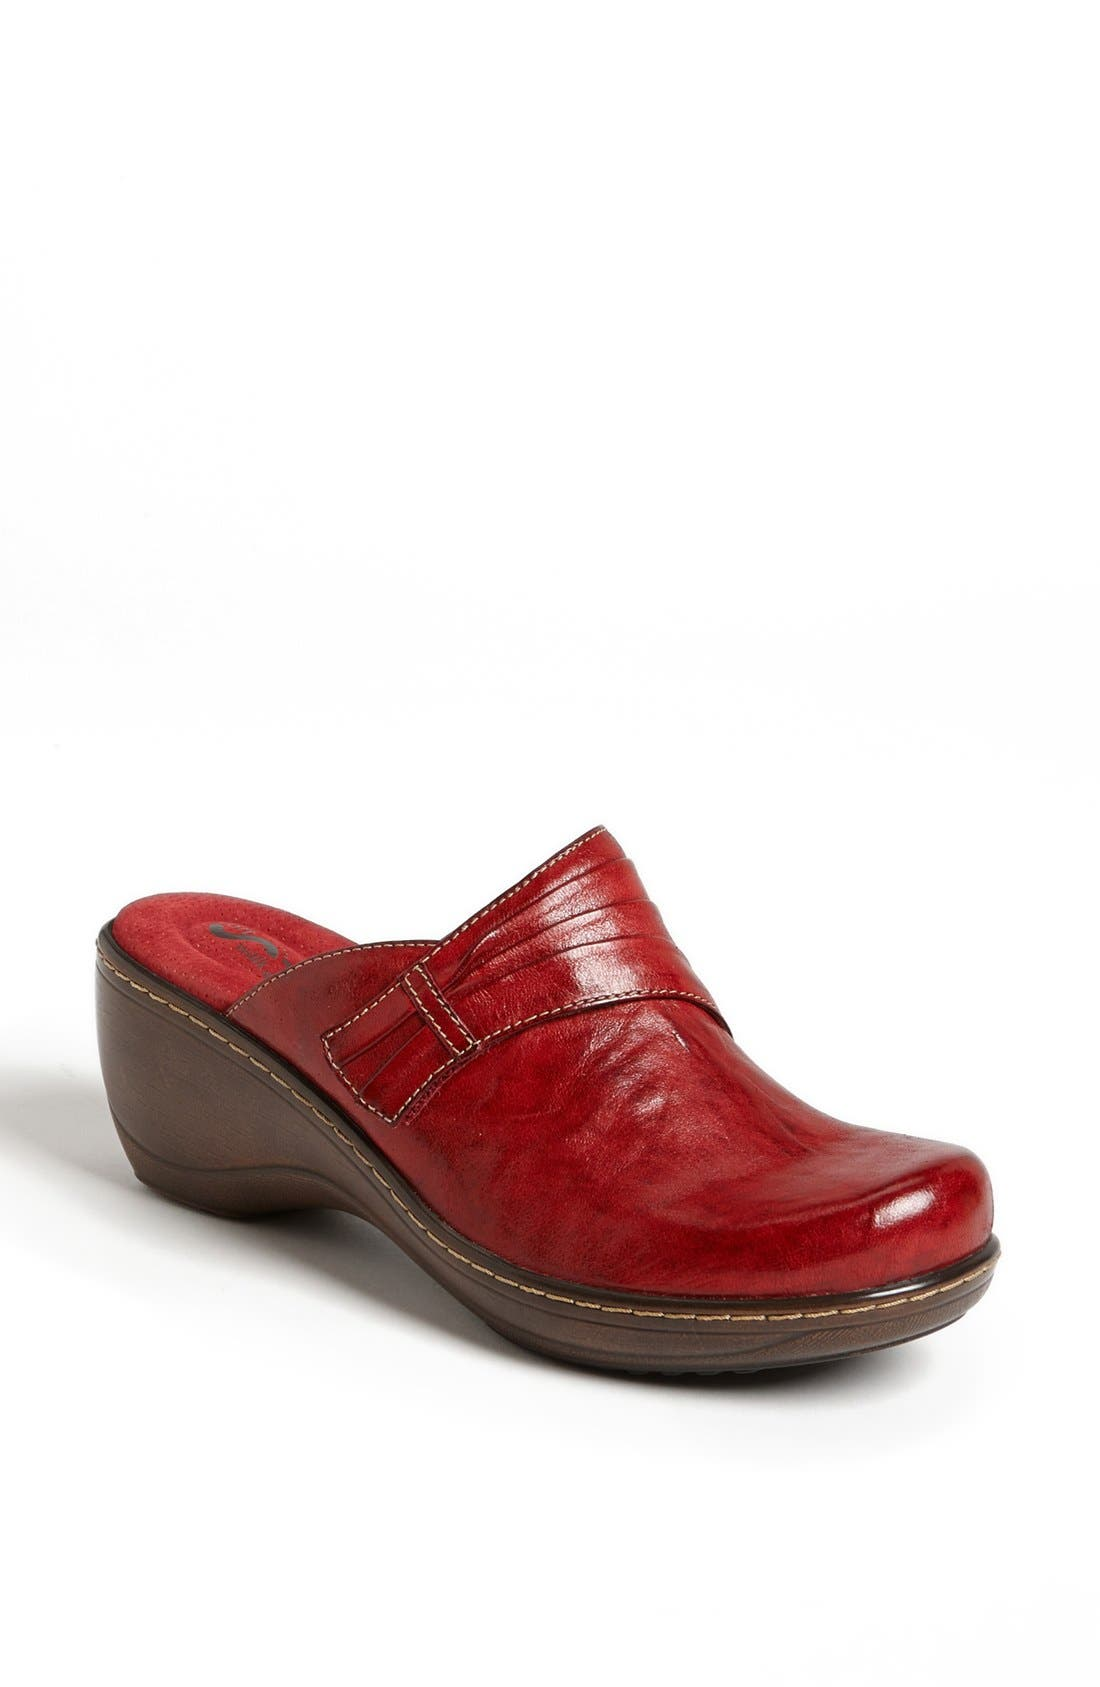 'Mason' Clog,                             Main thumbnail 1, color,                             Red Leather